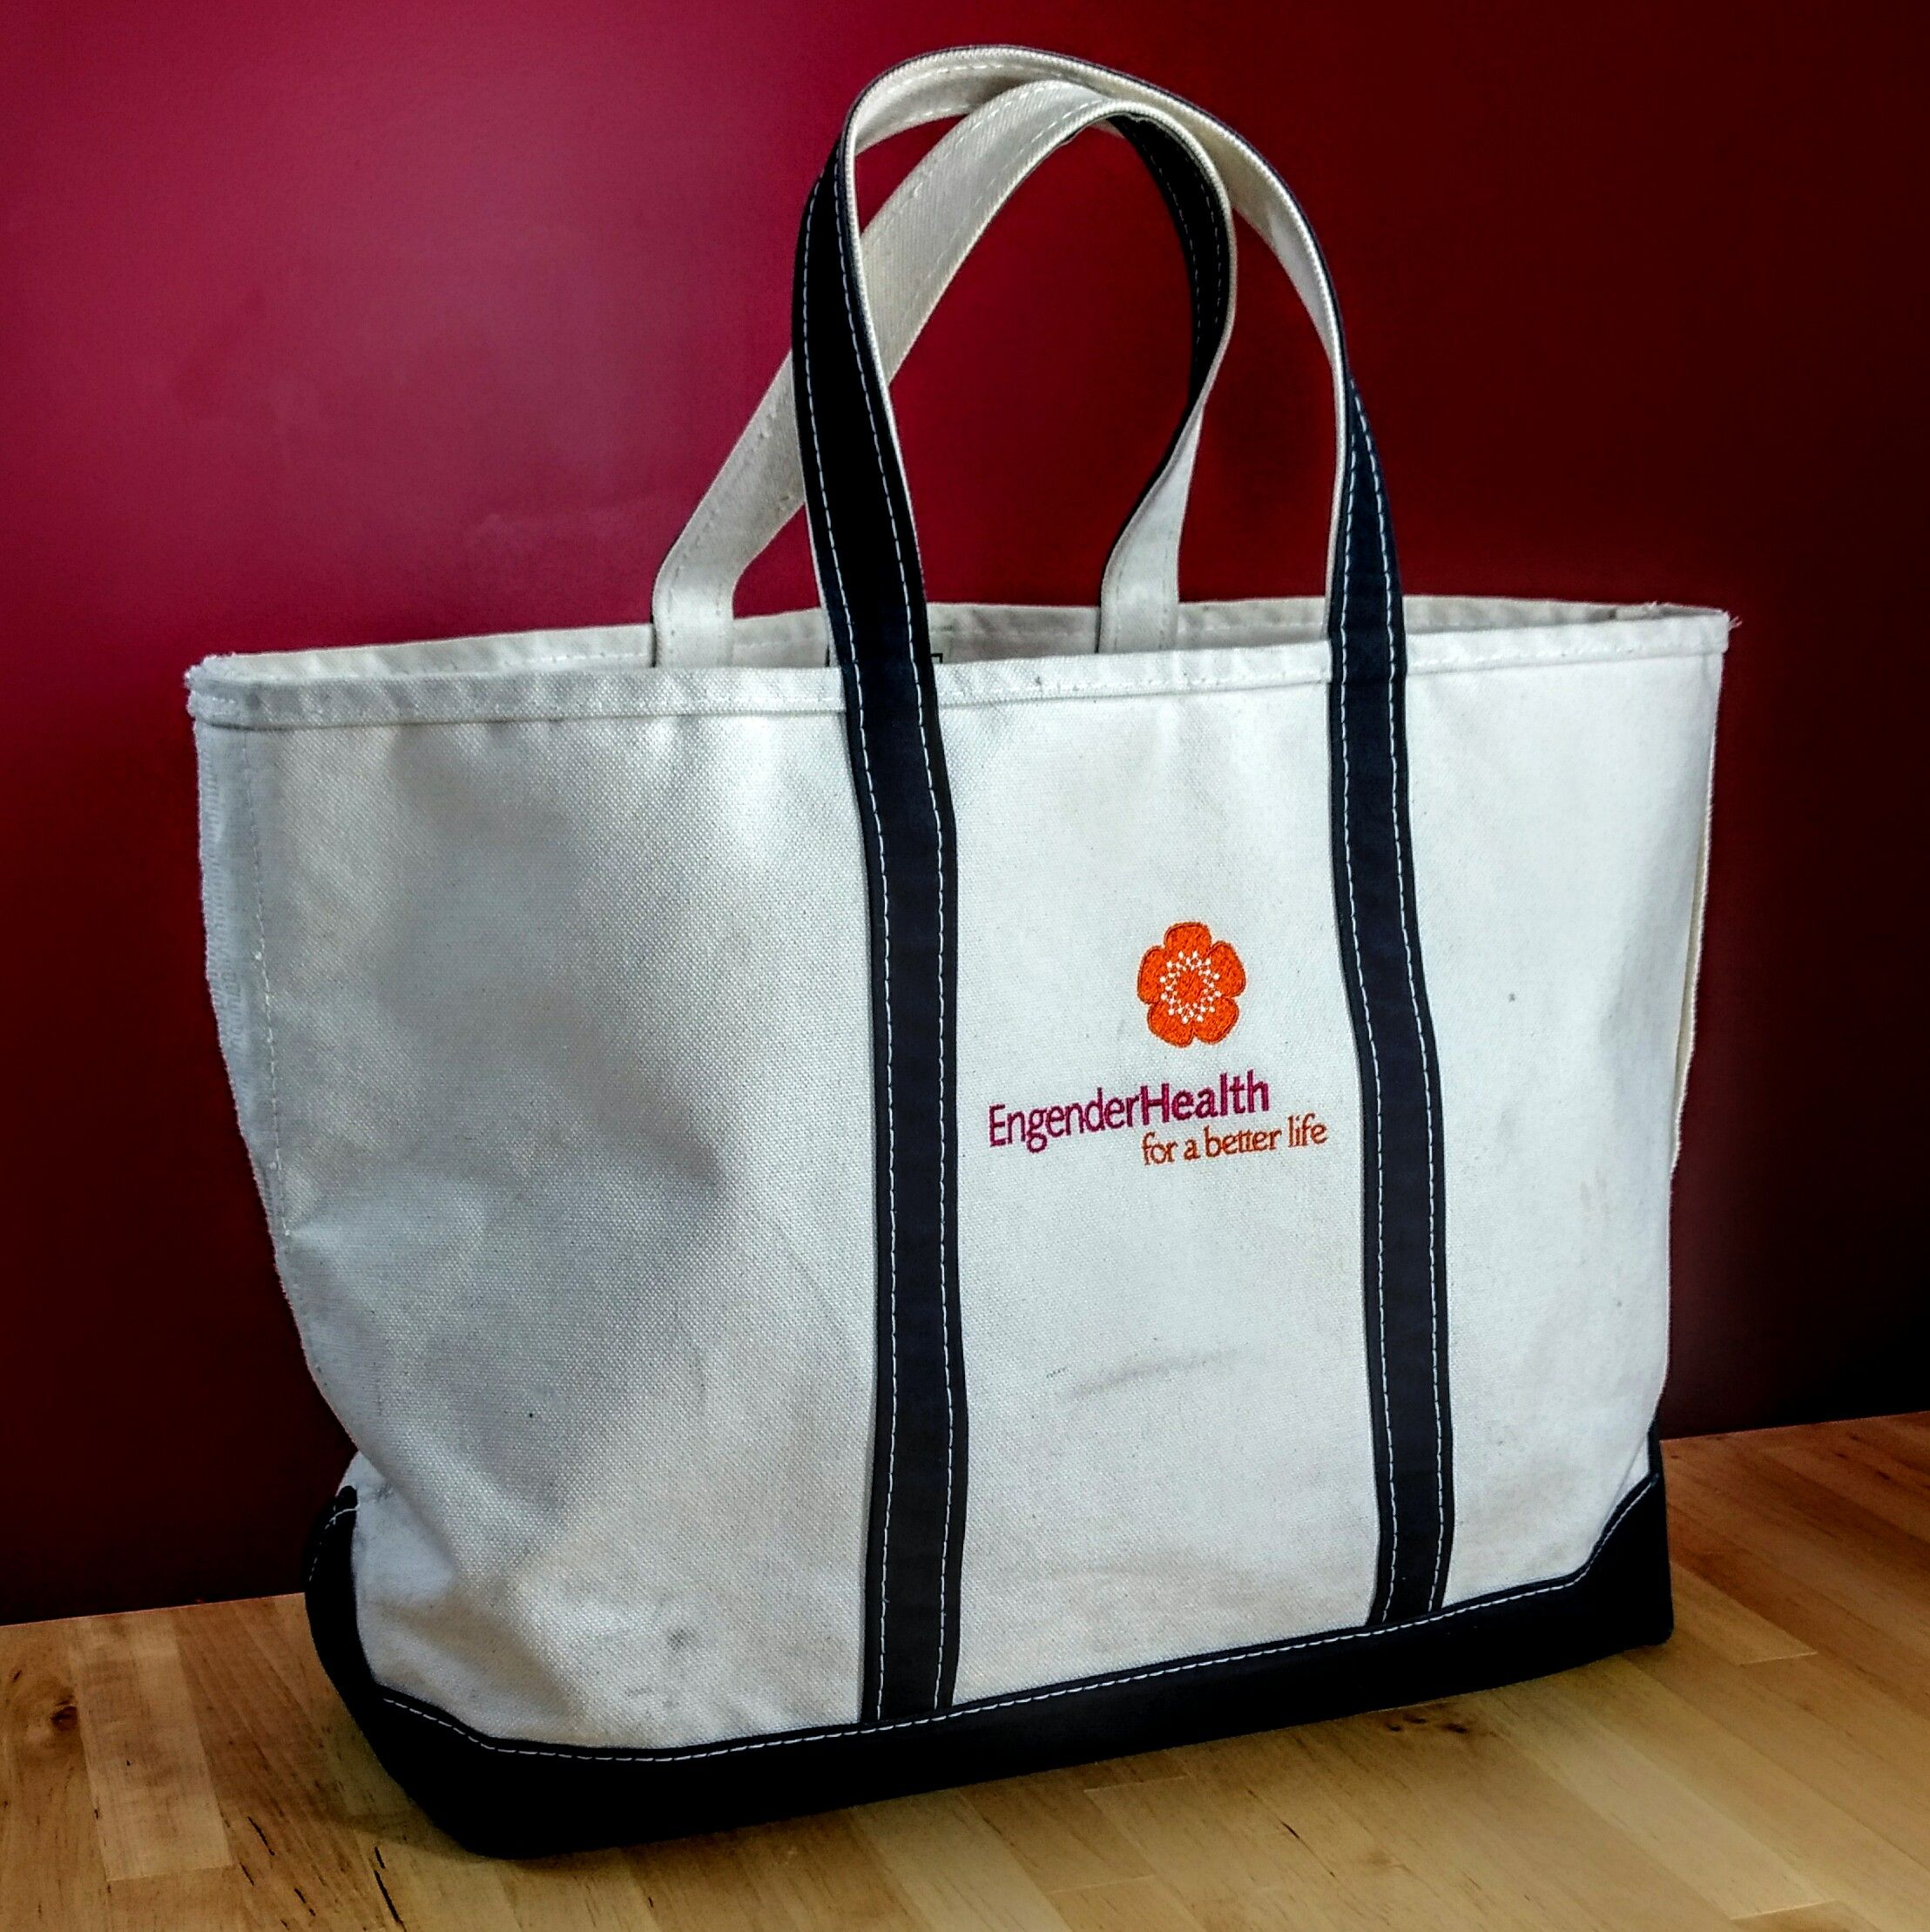 <b>Tote bag</b>, one of many EngenderHealth swag items